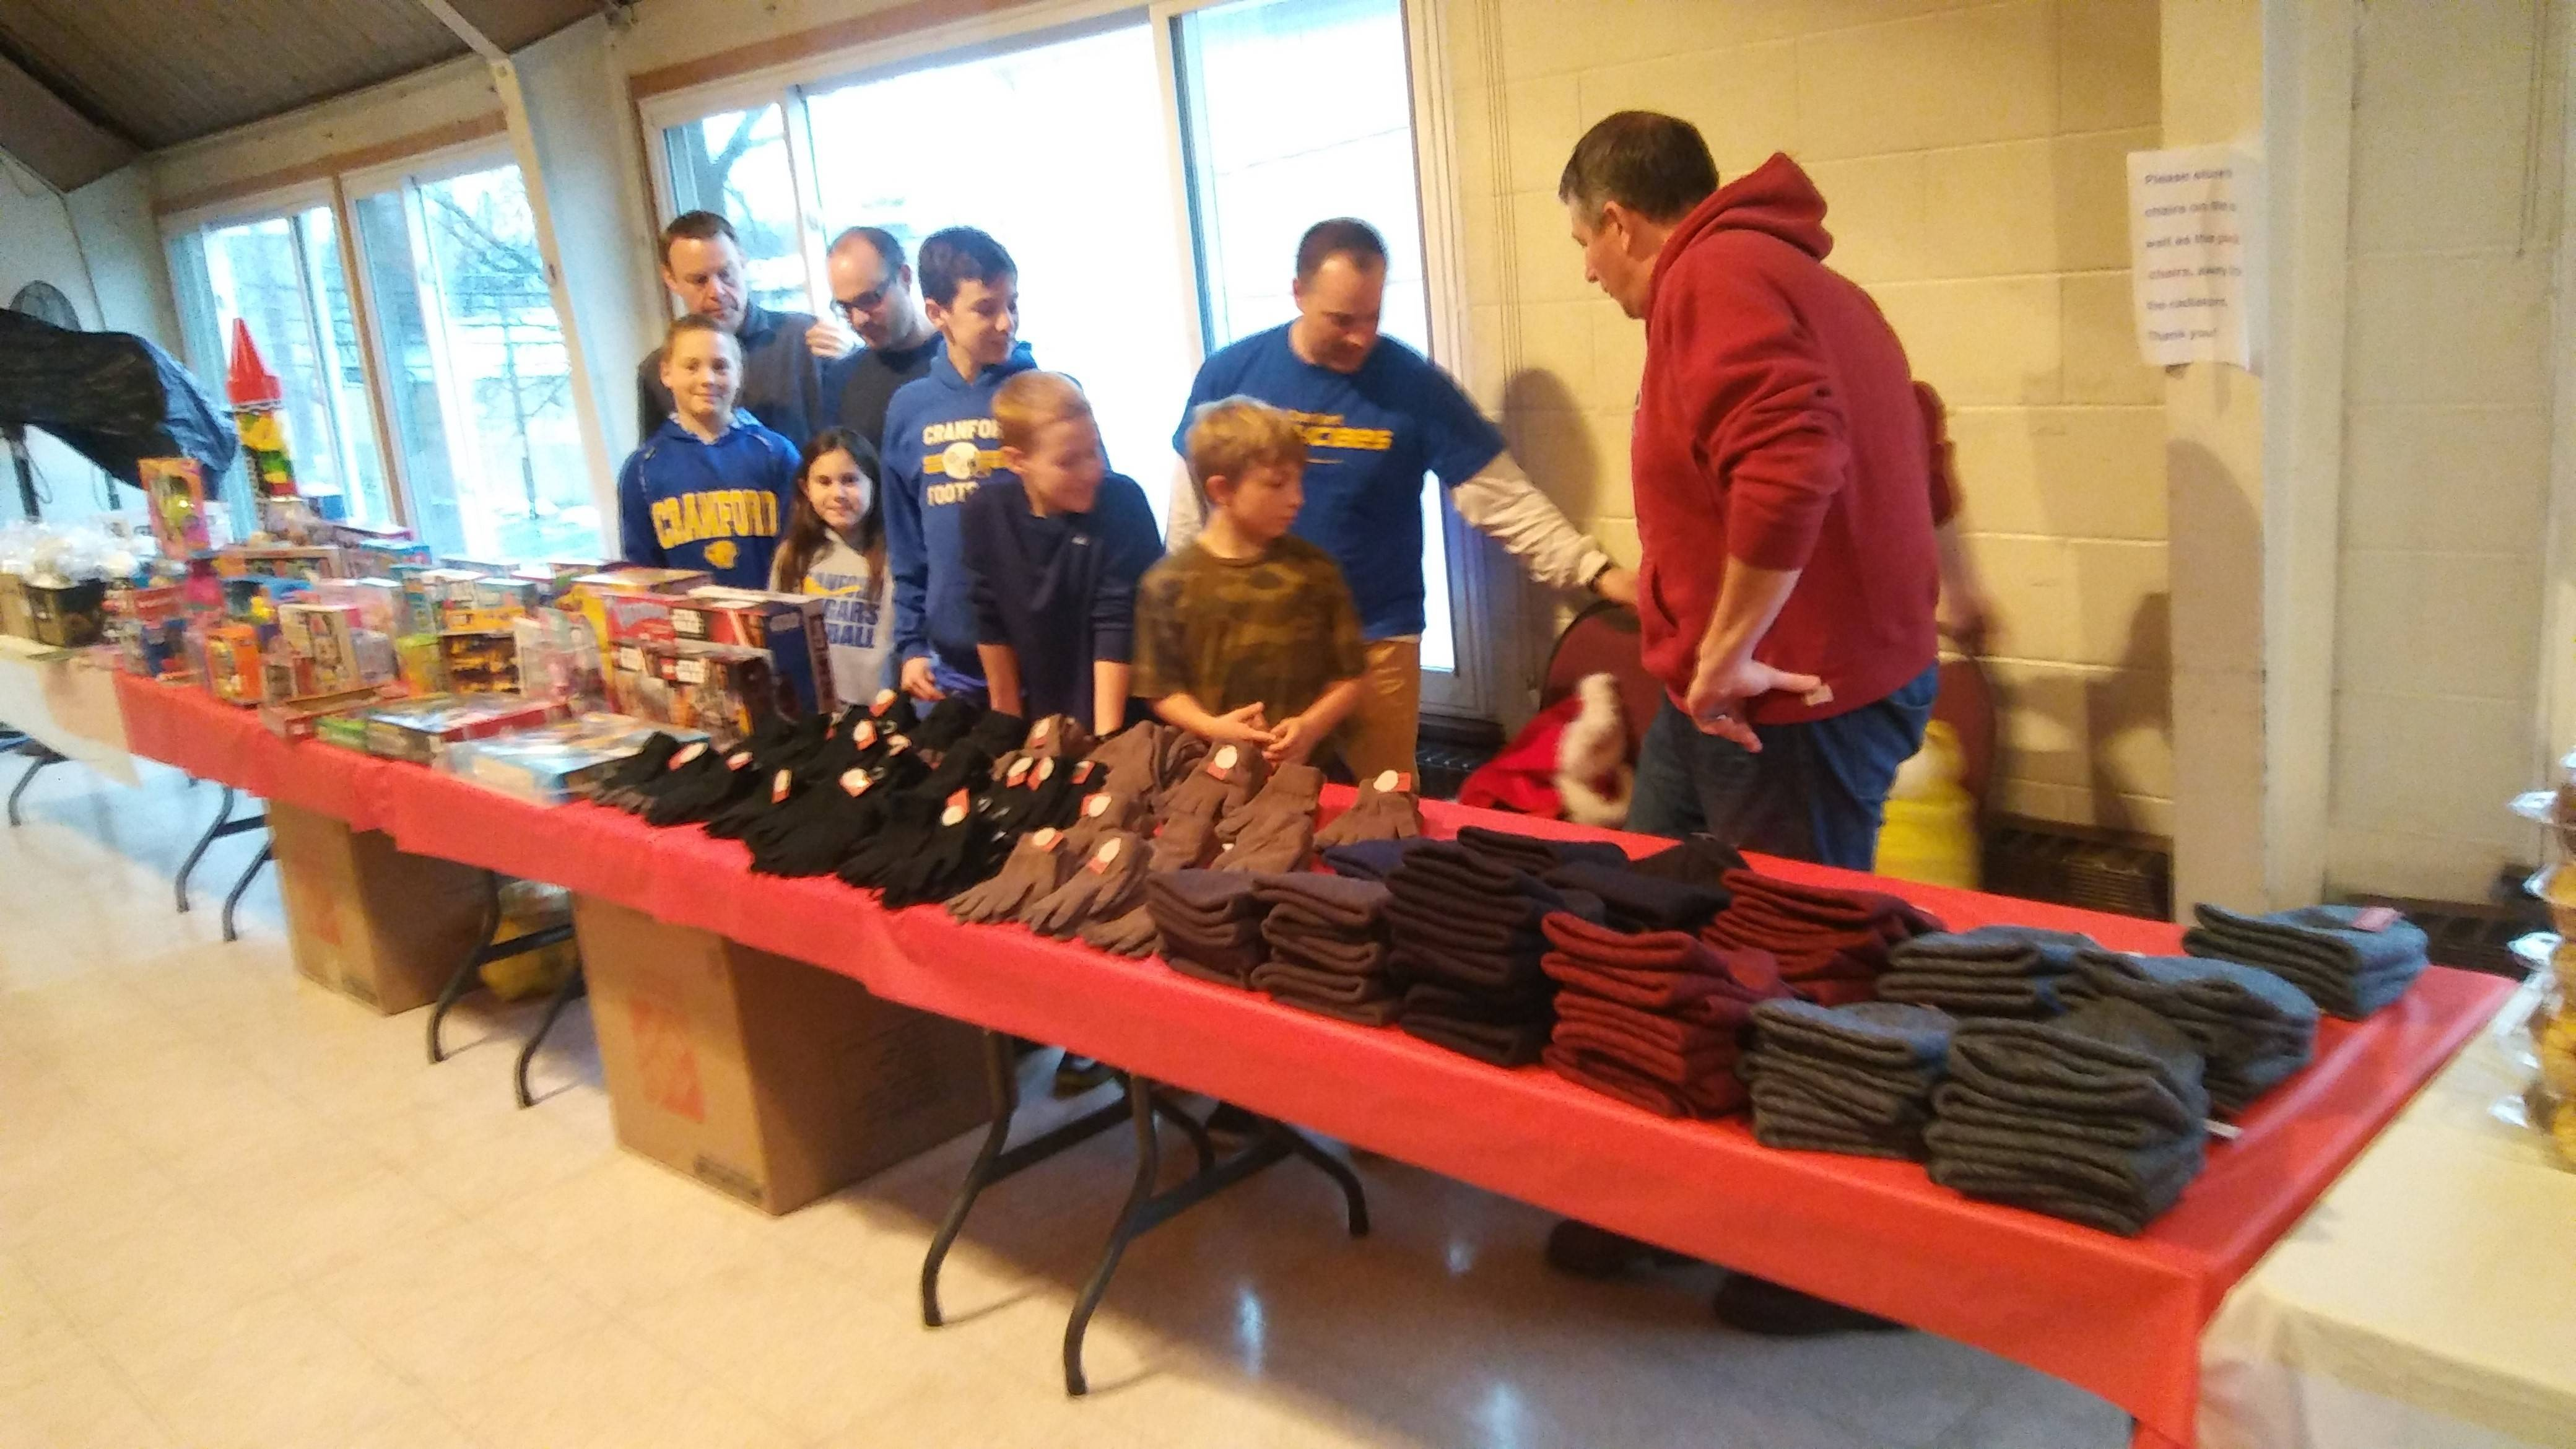 acc61da2a4516c025671_The_Cranford_Jaycees_organizing_the_donated_goods.jpg